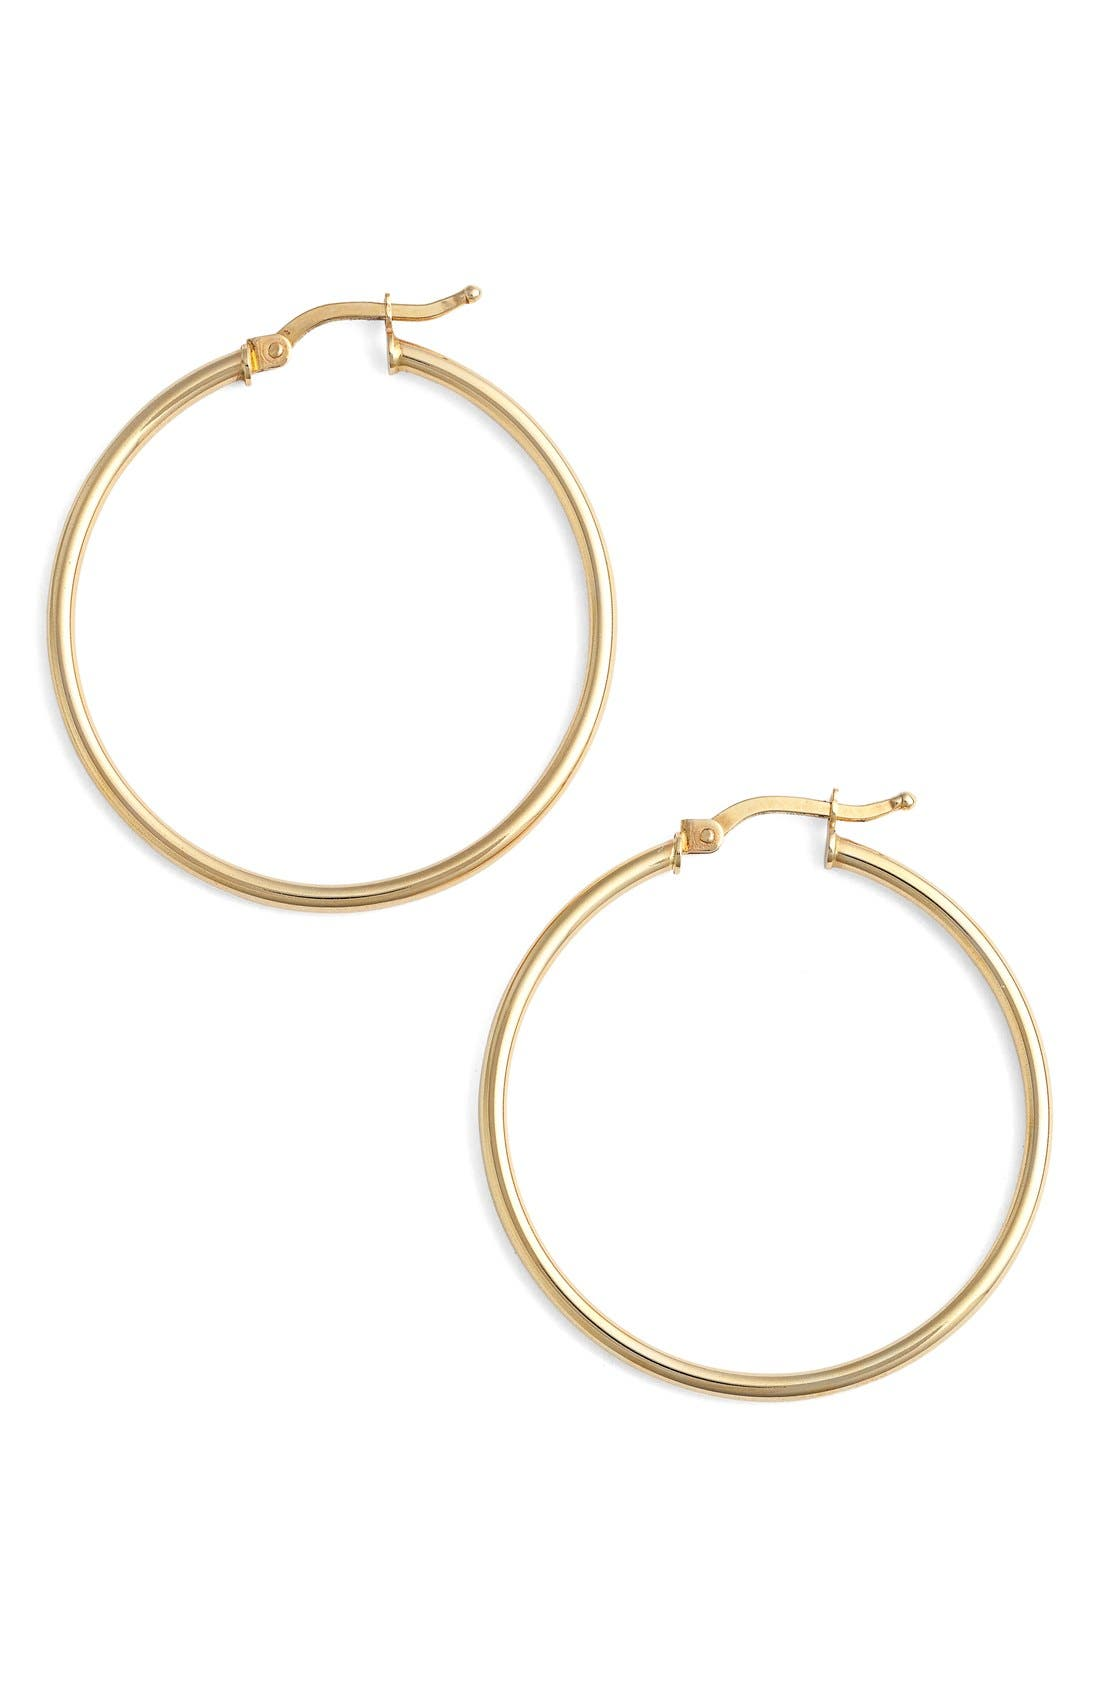 14k Gold Hoop Earrings,                             Main thumbnail 1, color,                             Yellow Gold